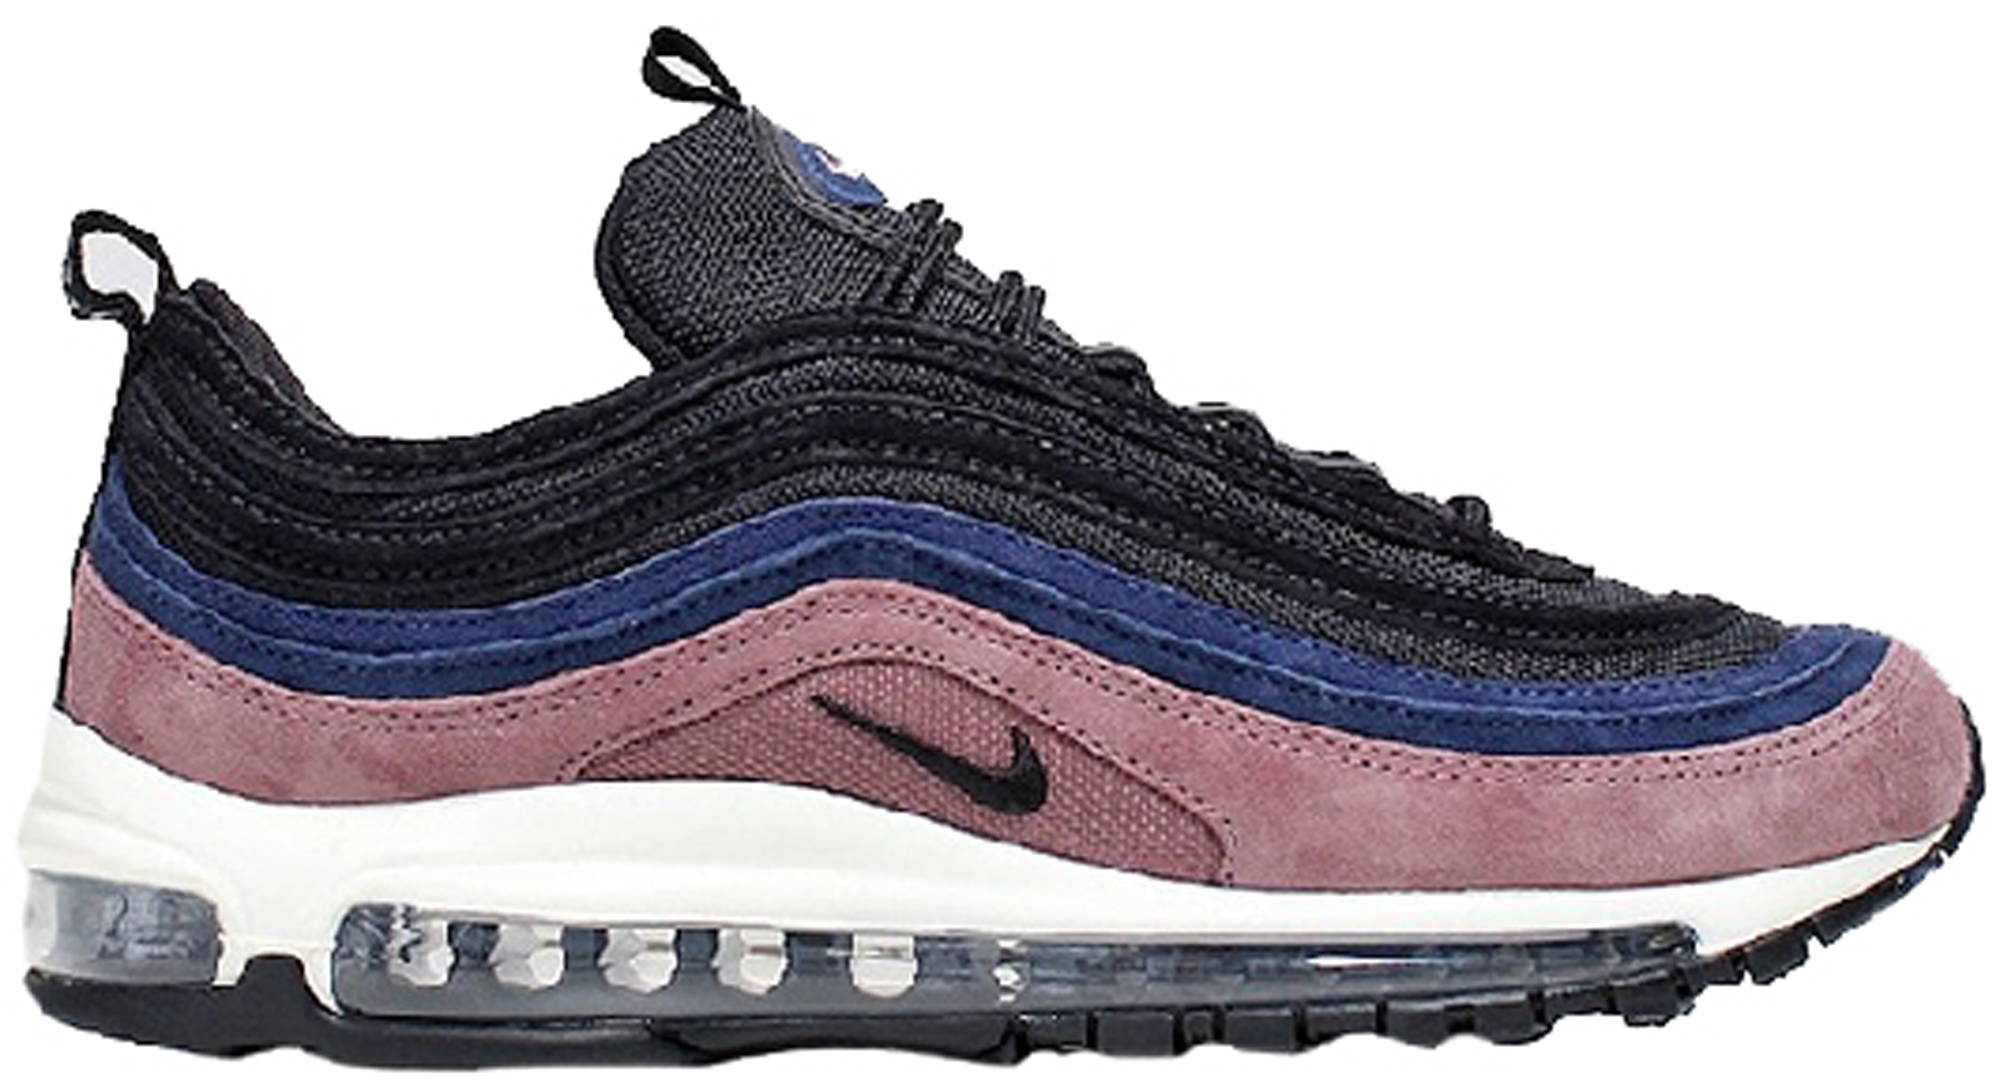 Air Max 97 